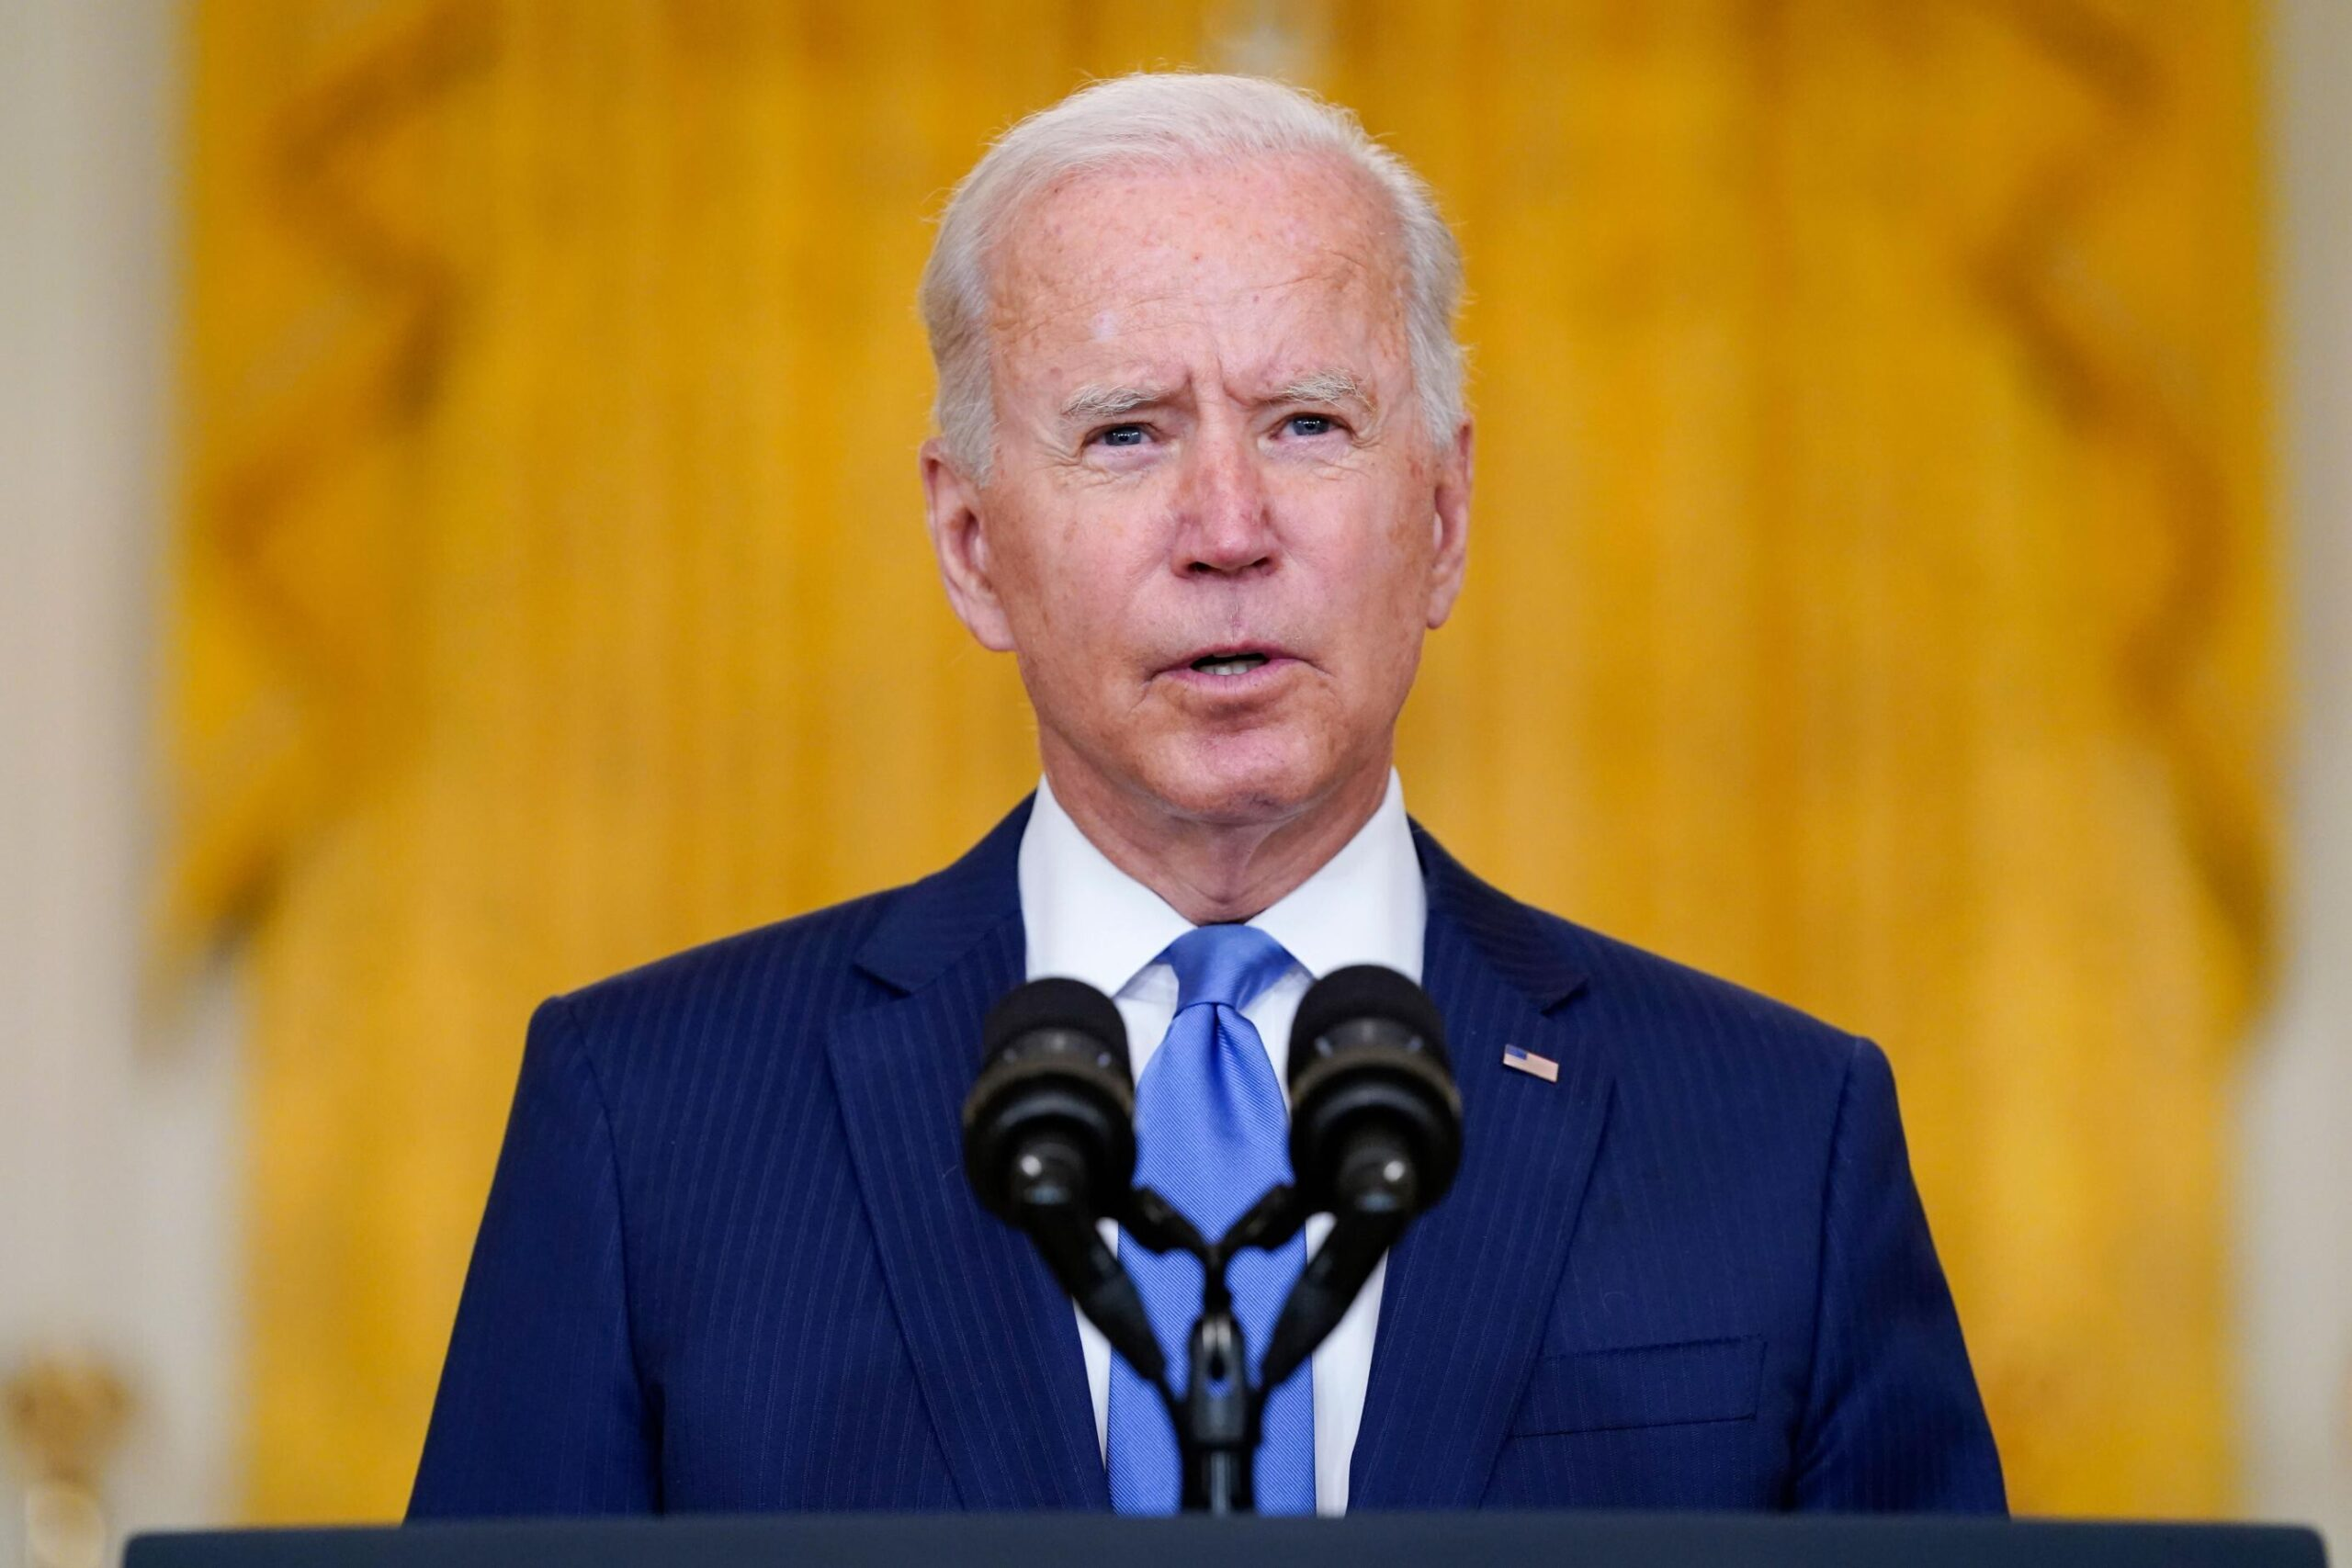 <i>Evan Vucci/AP</i><br/>The Biden administration is planning to raise the refugee cap for fiscal year 2022 to 125